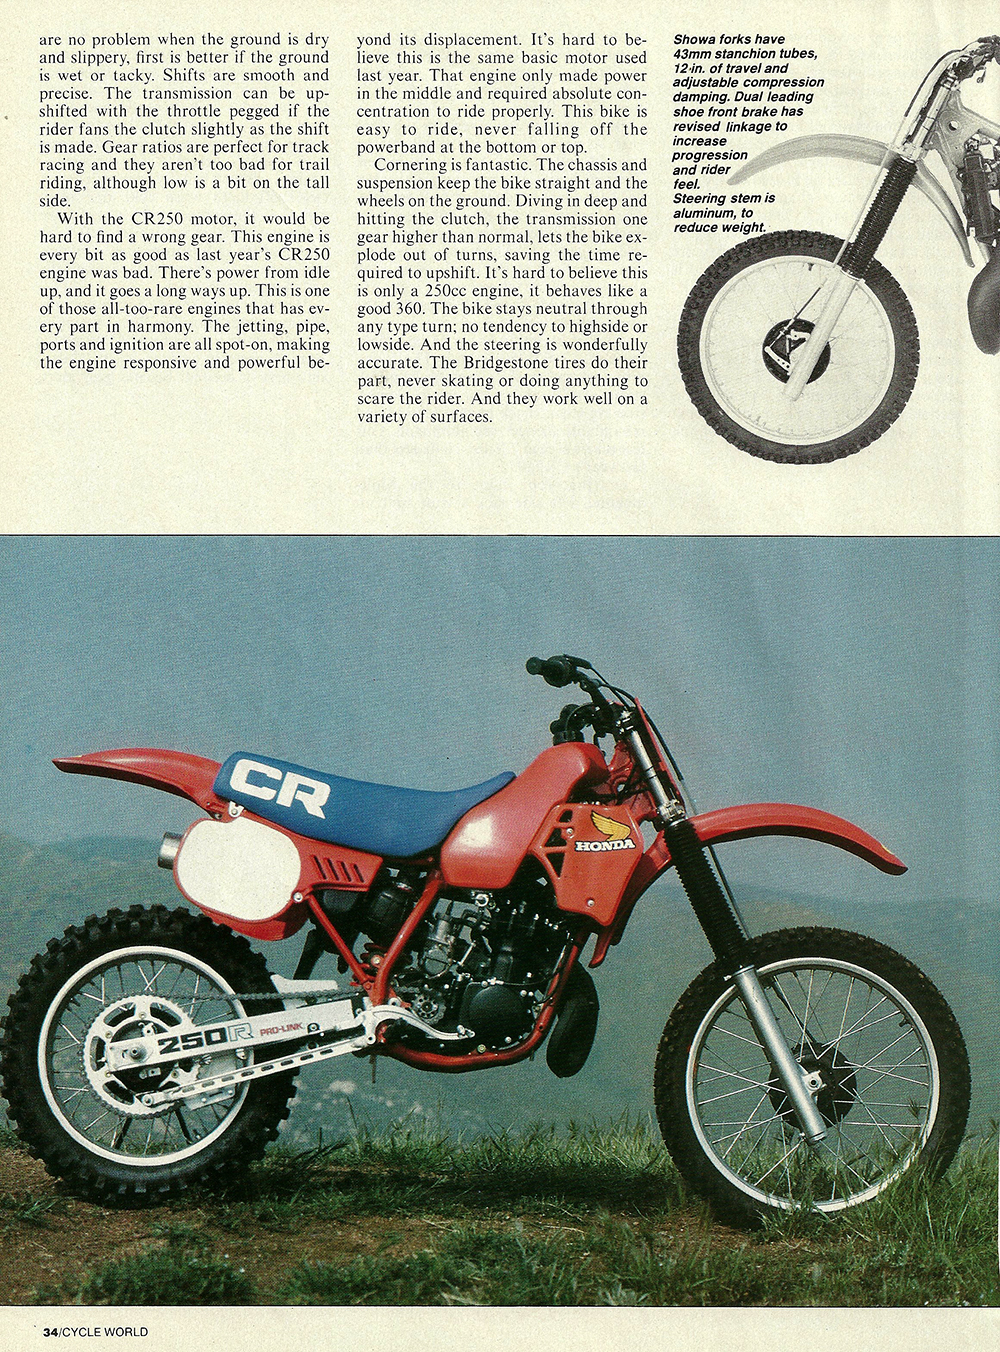 1983 Honda CR250R road test 03.jpg